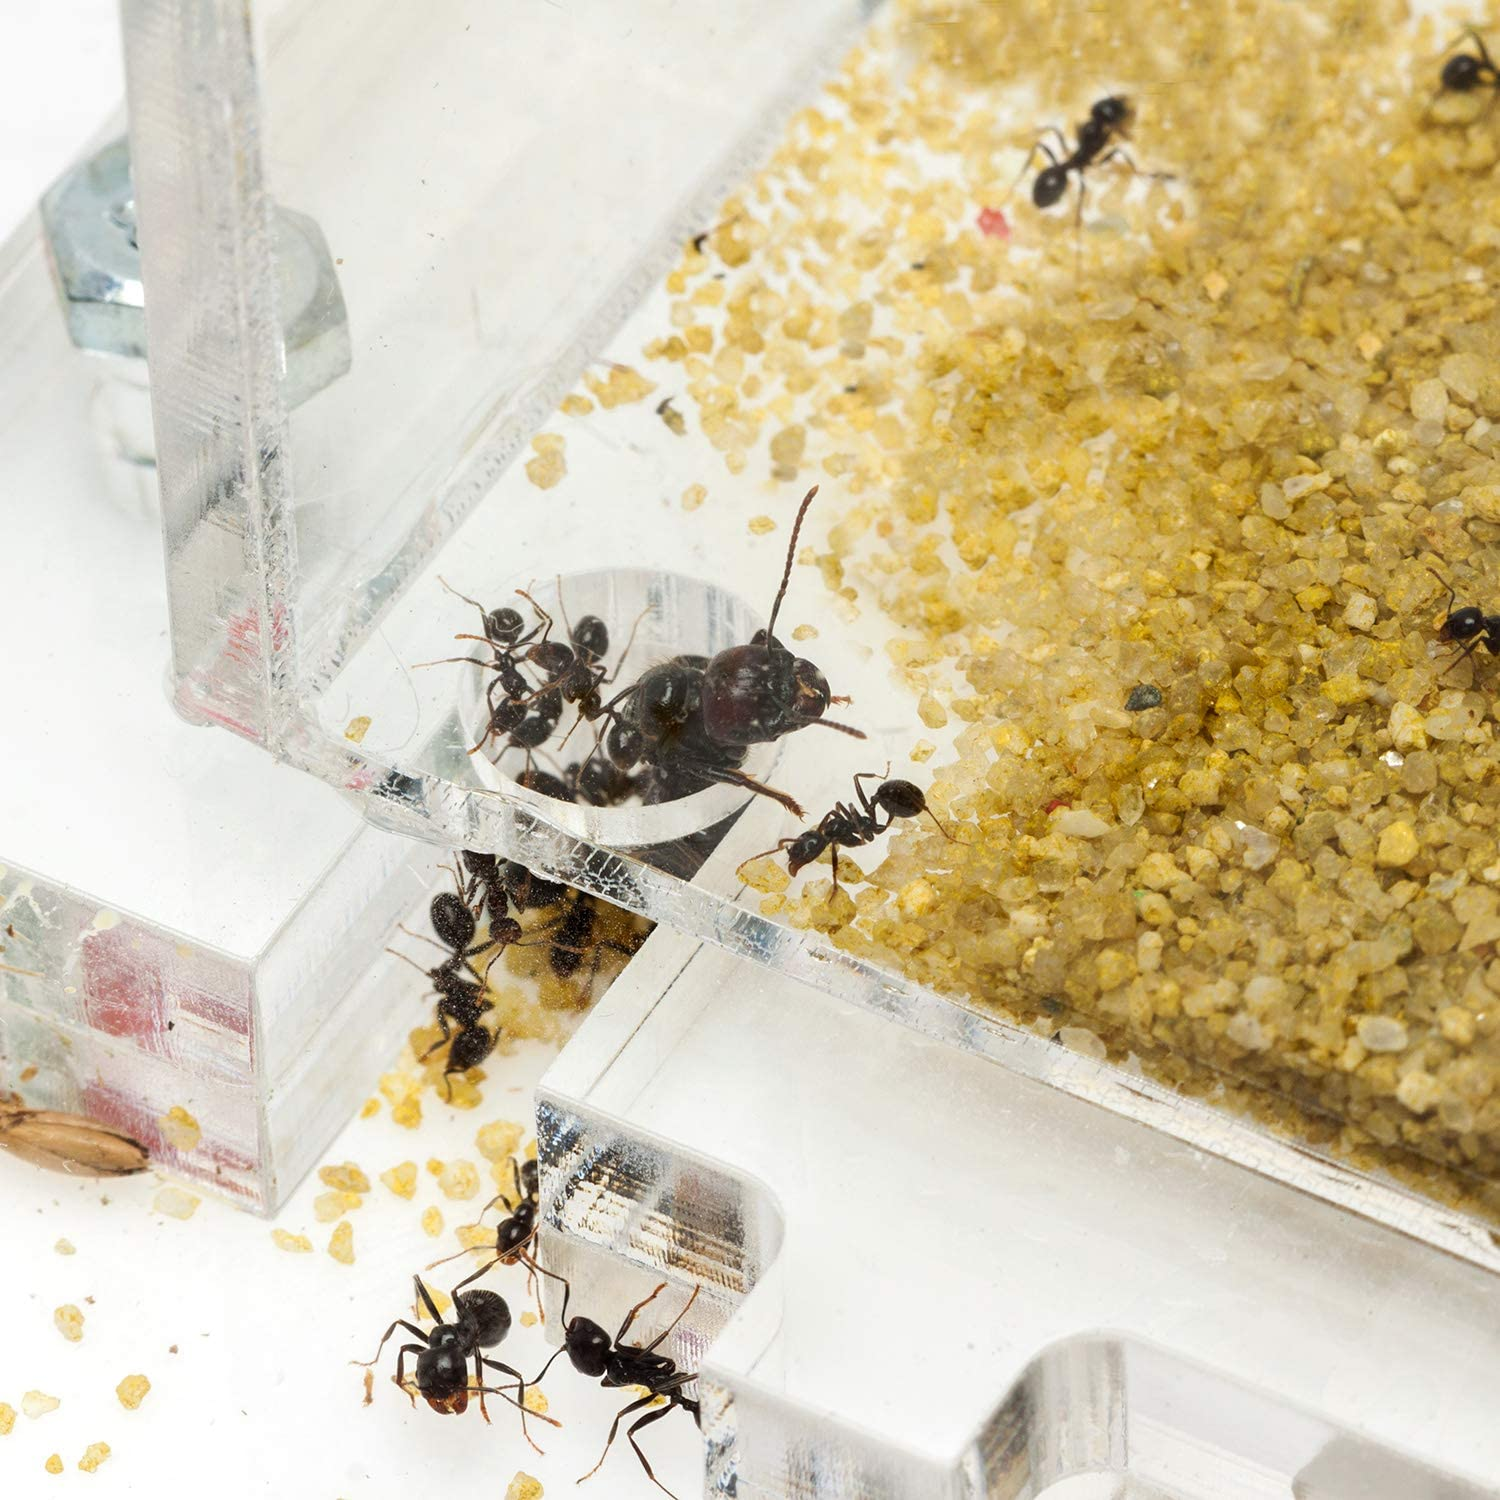 AntHouse Forage Zone and Plaster Layer Free Ants Included Acrylic Ant Hill 20x15x1,5 cm Foam Moisture System